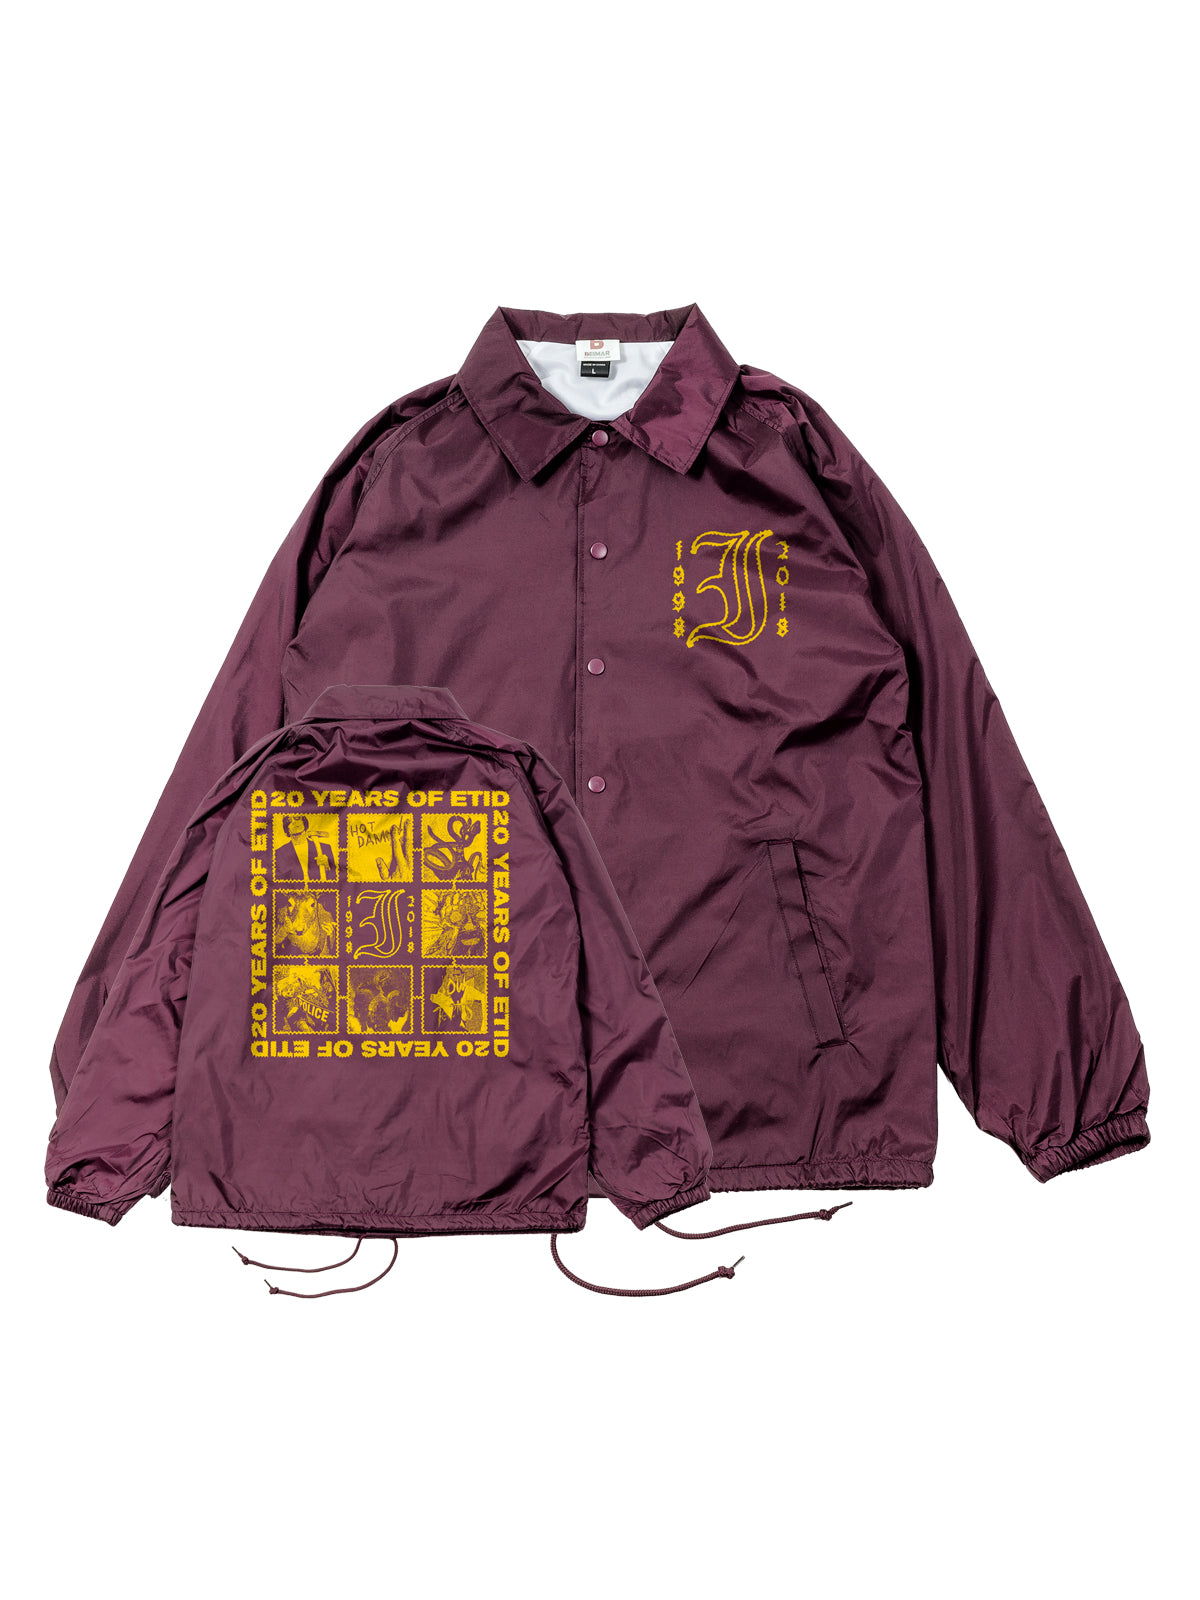 Every Time I Die - 20 Years Windbreaker - Merch Limited